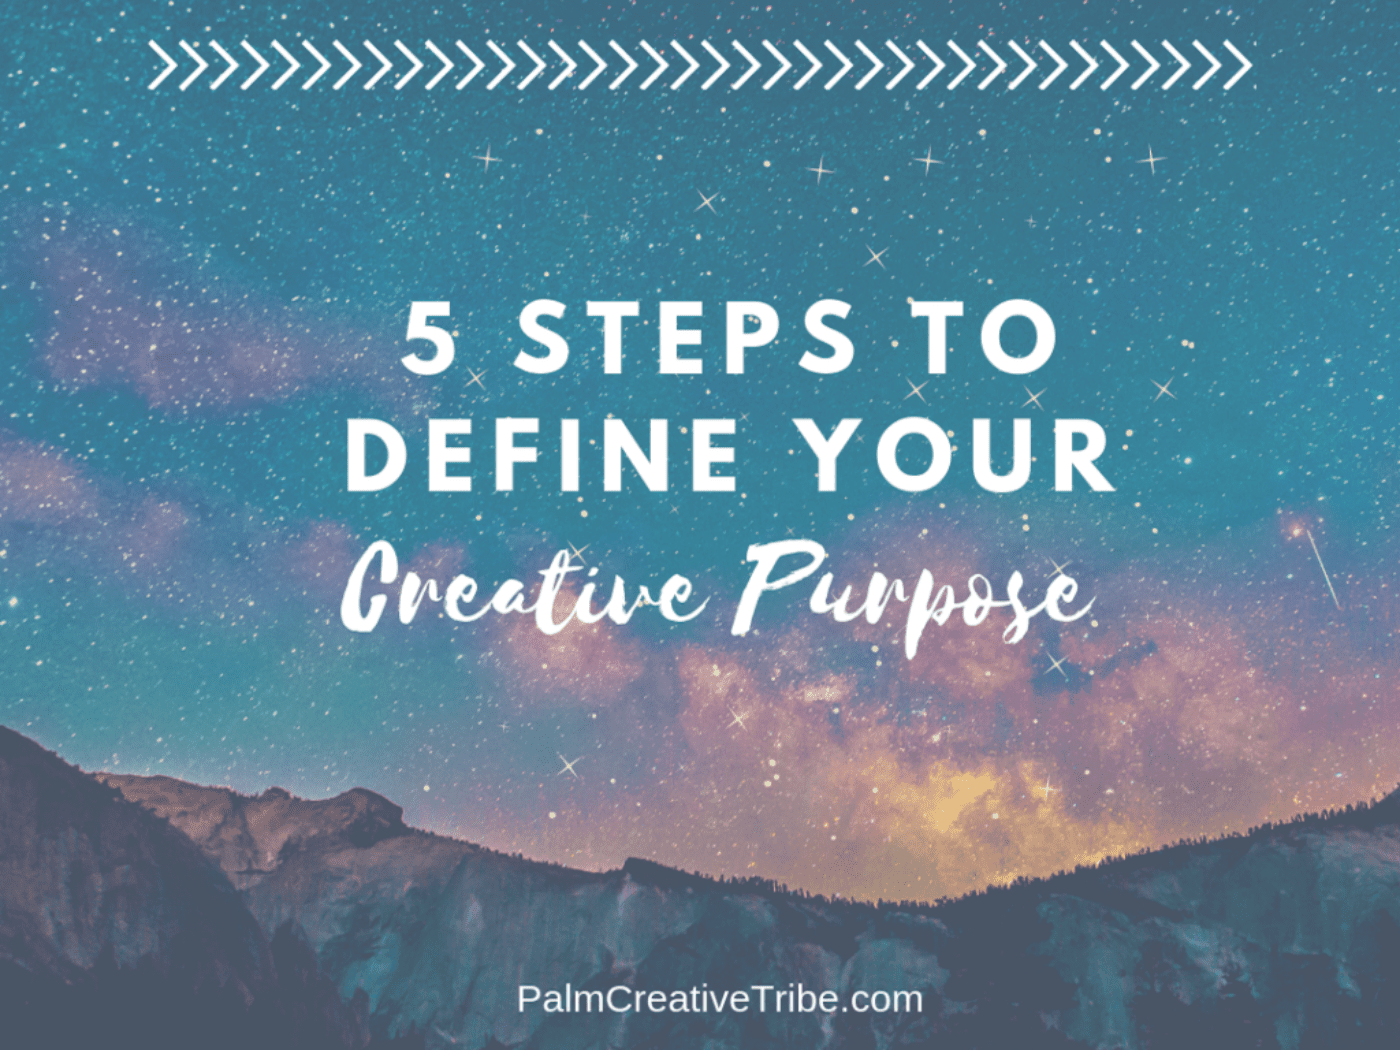 5 steps to define your creative purpose